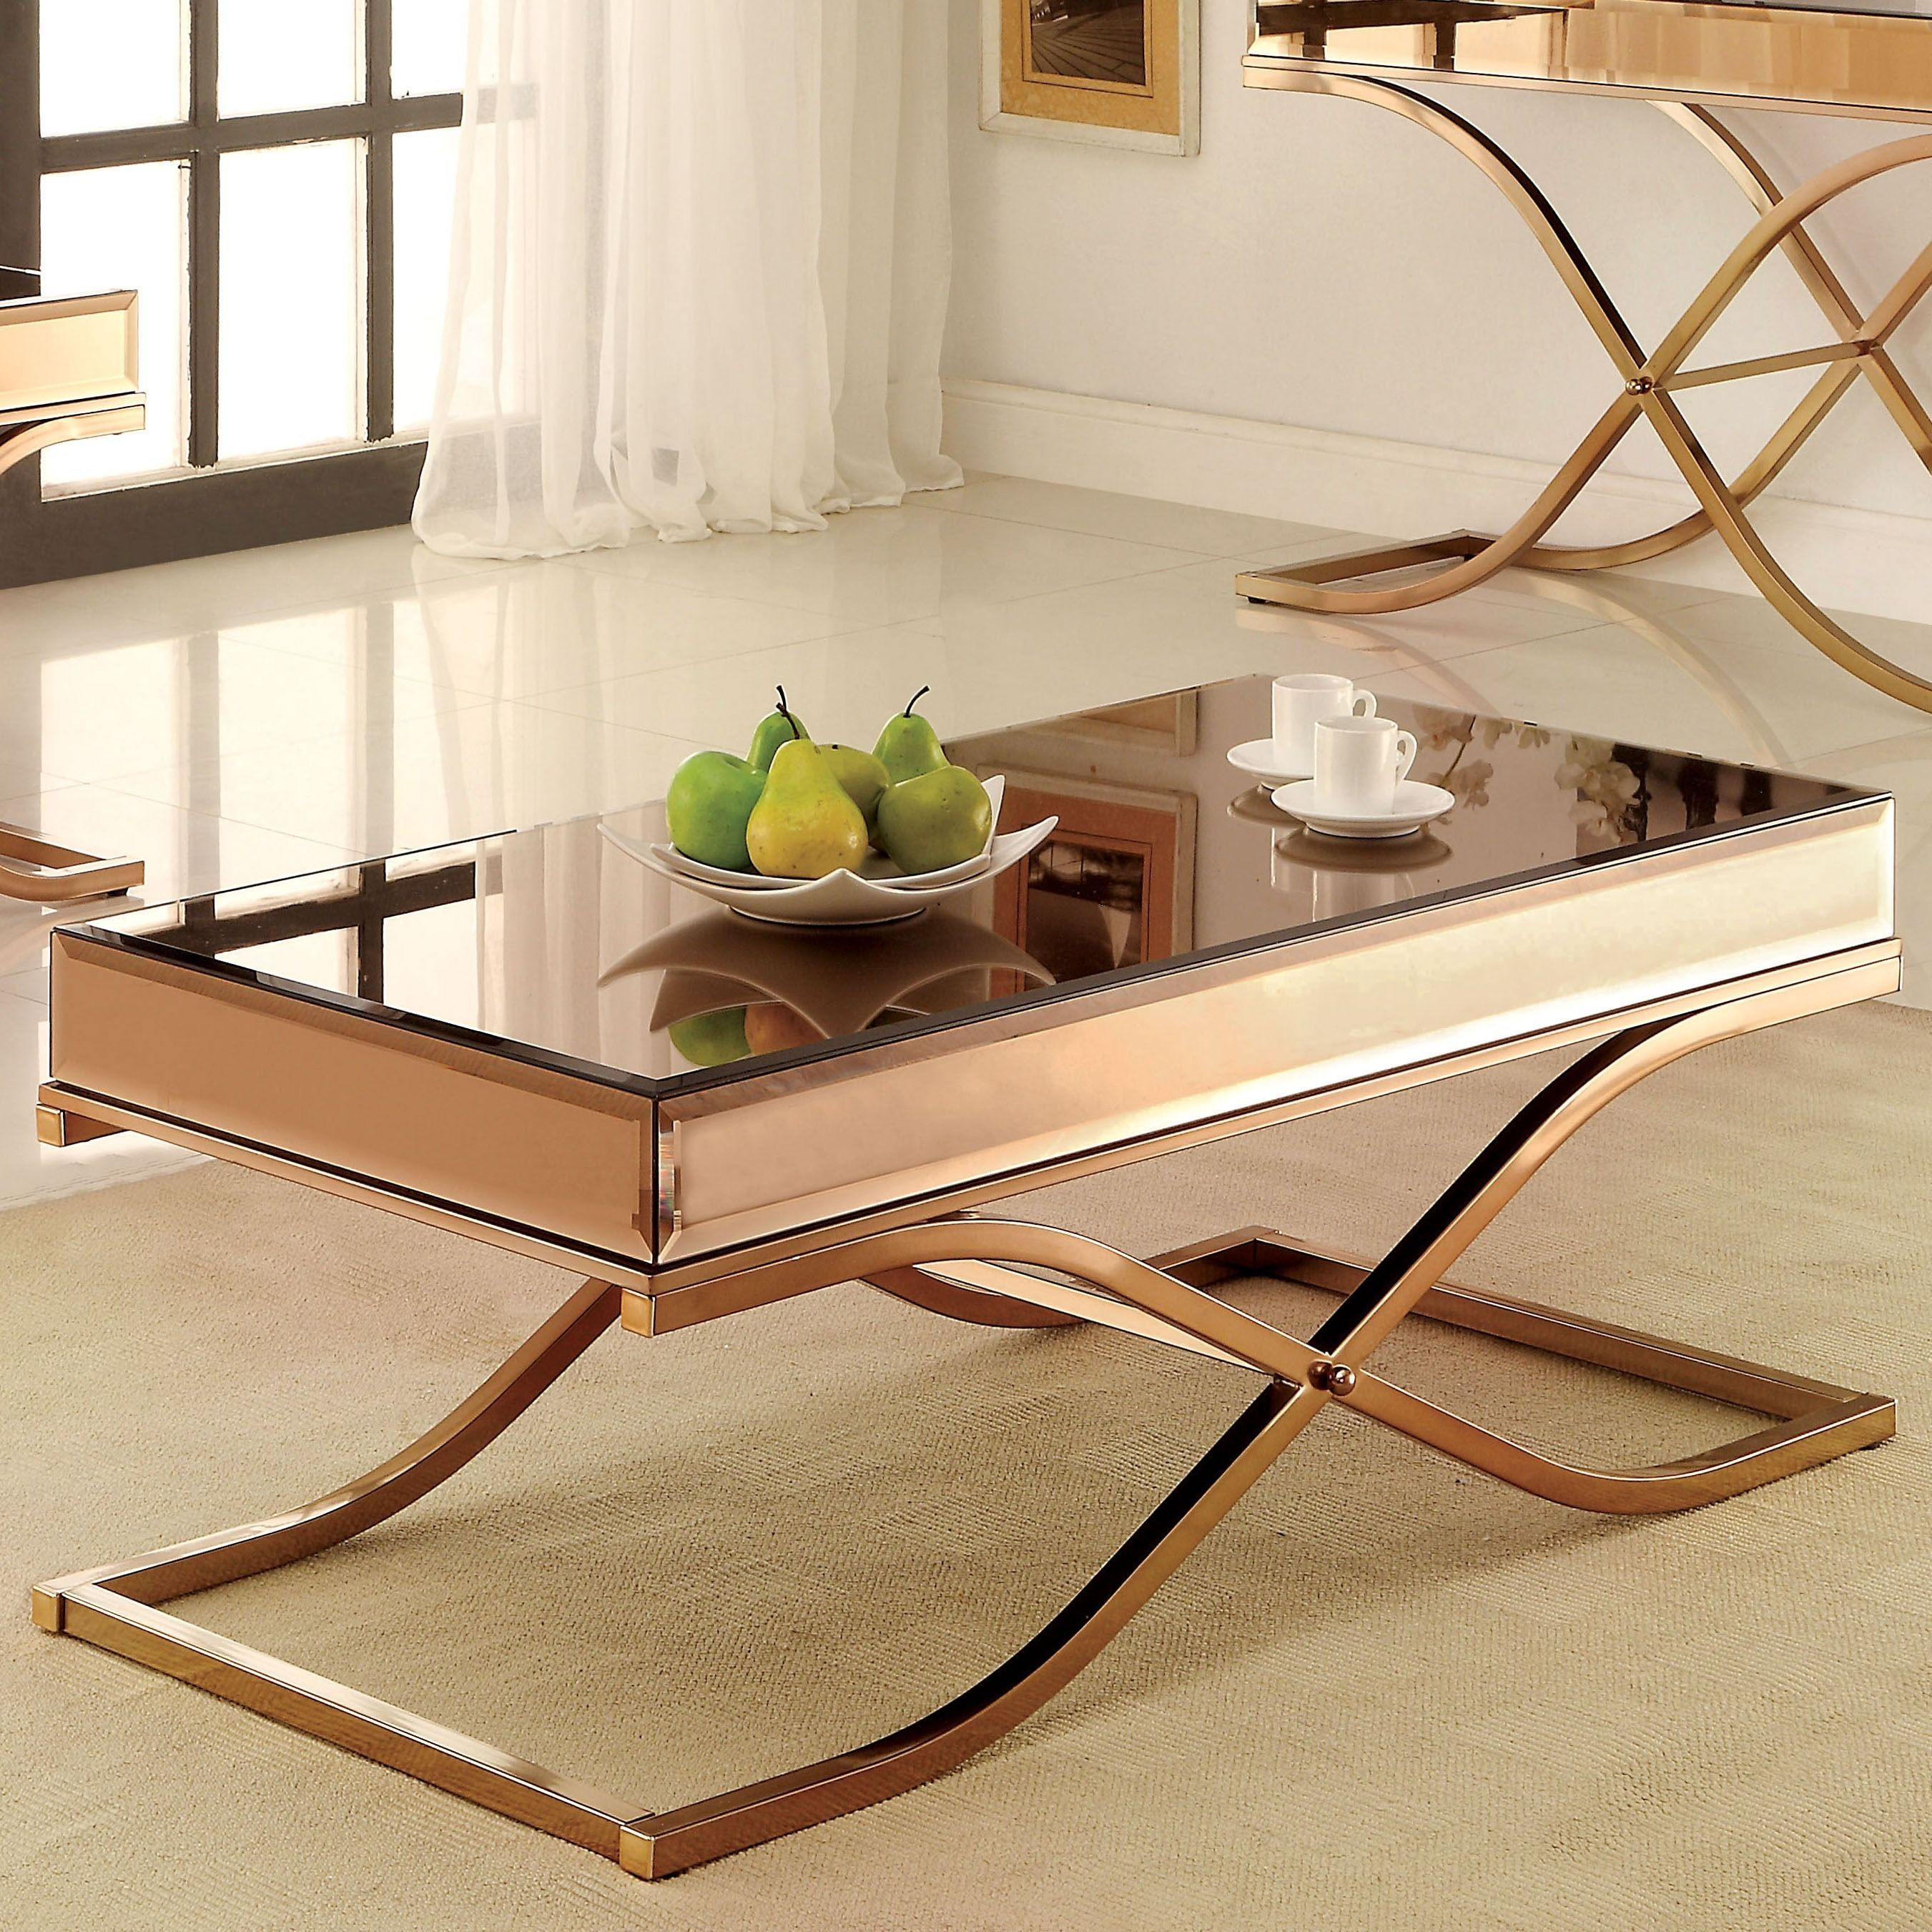 Furniture Of America Orelia Luxury Copper Metal With Smoked Gl Mirror Top Coffee Brown Table Gold